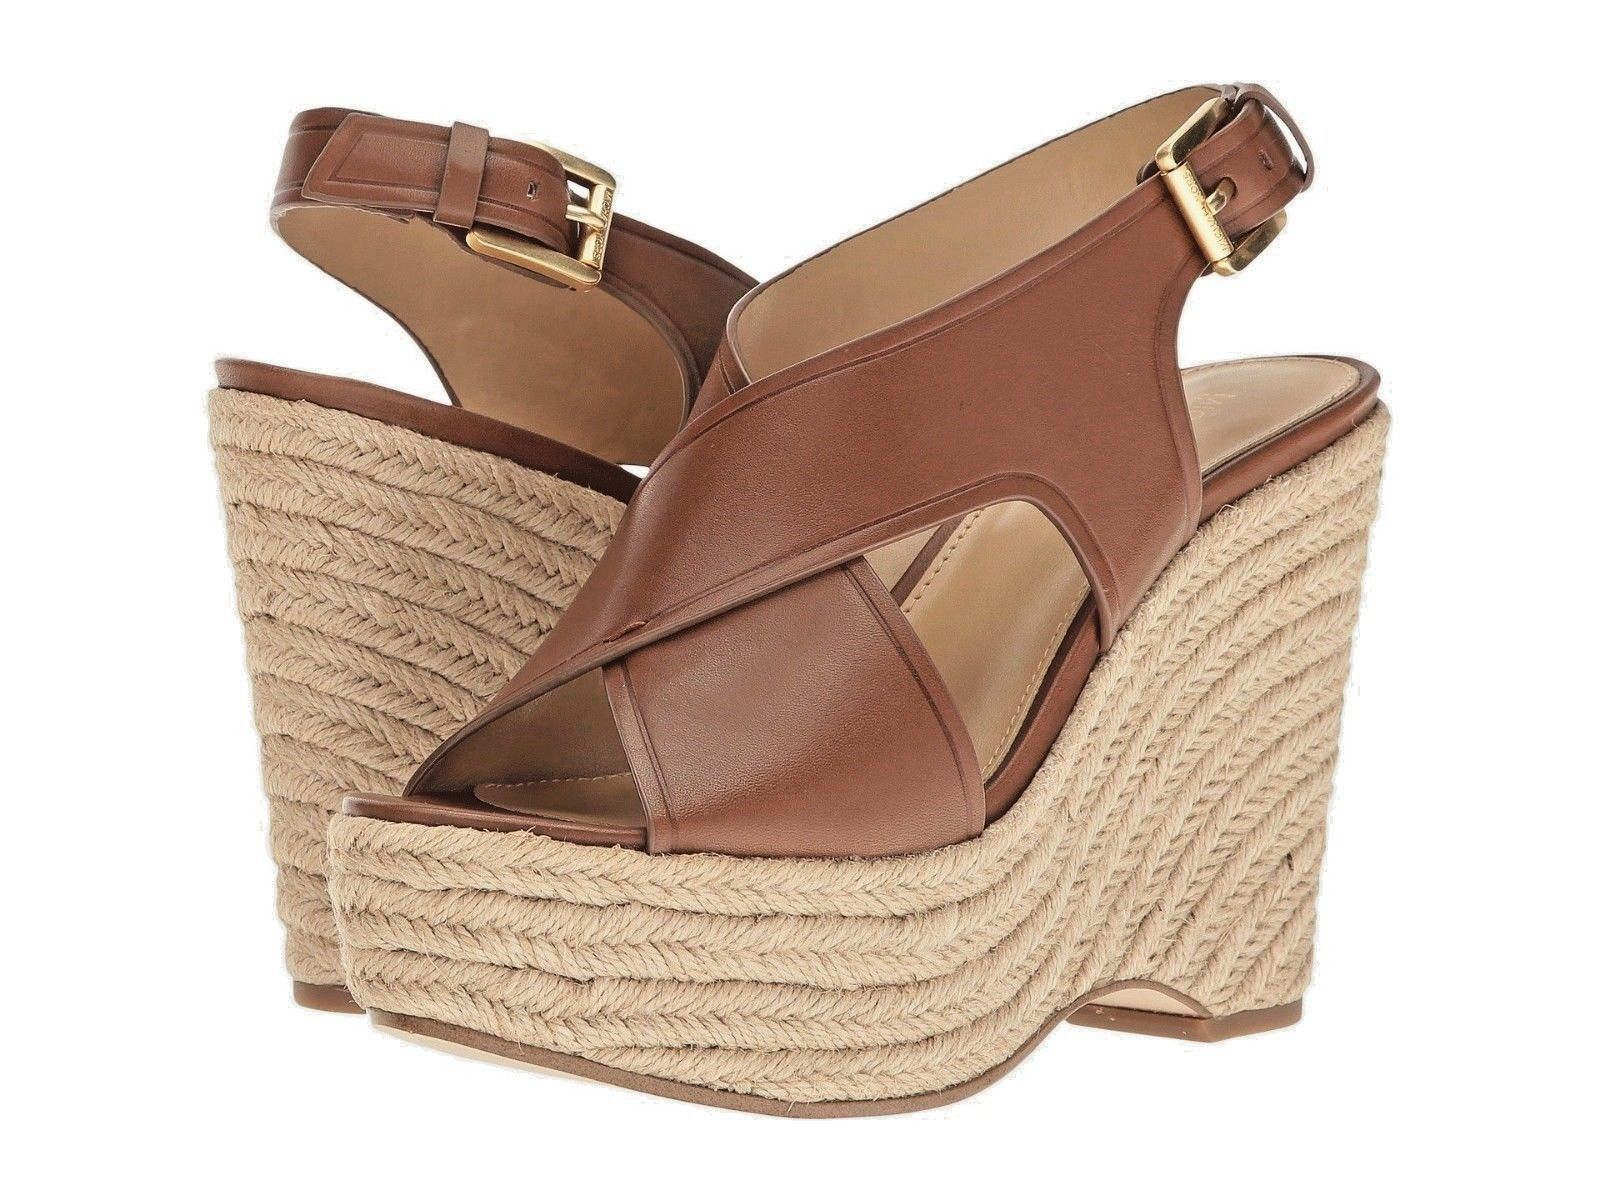 94340d1404d Michael Kors Angeline Wedge and 50 similar items